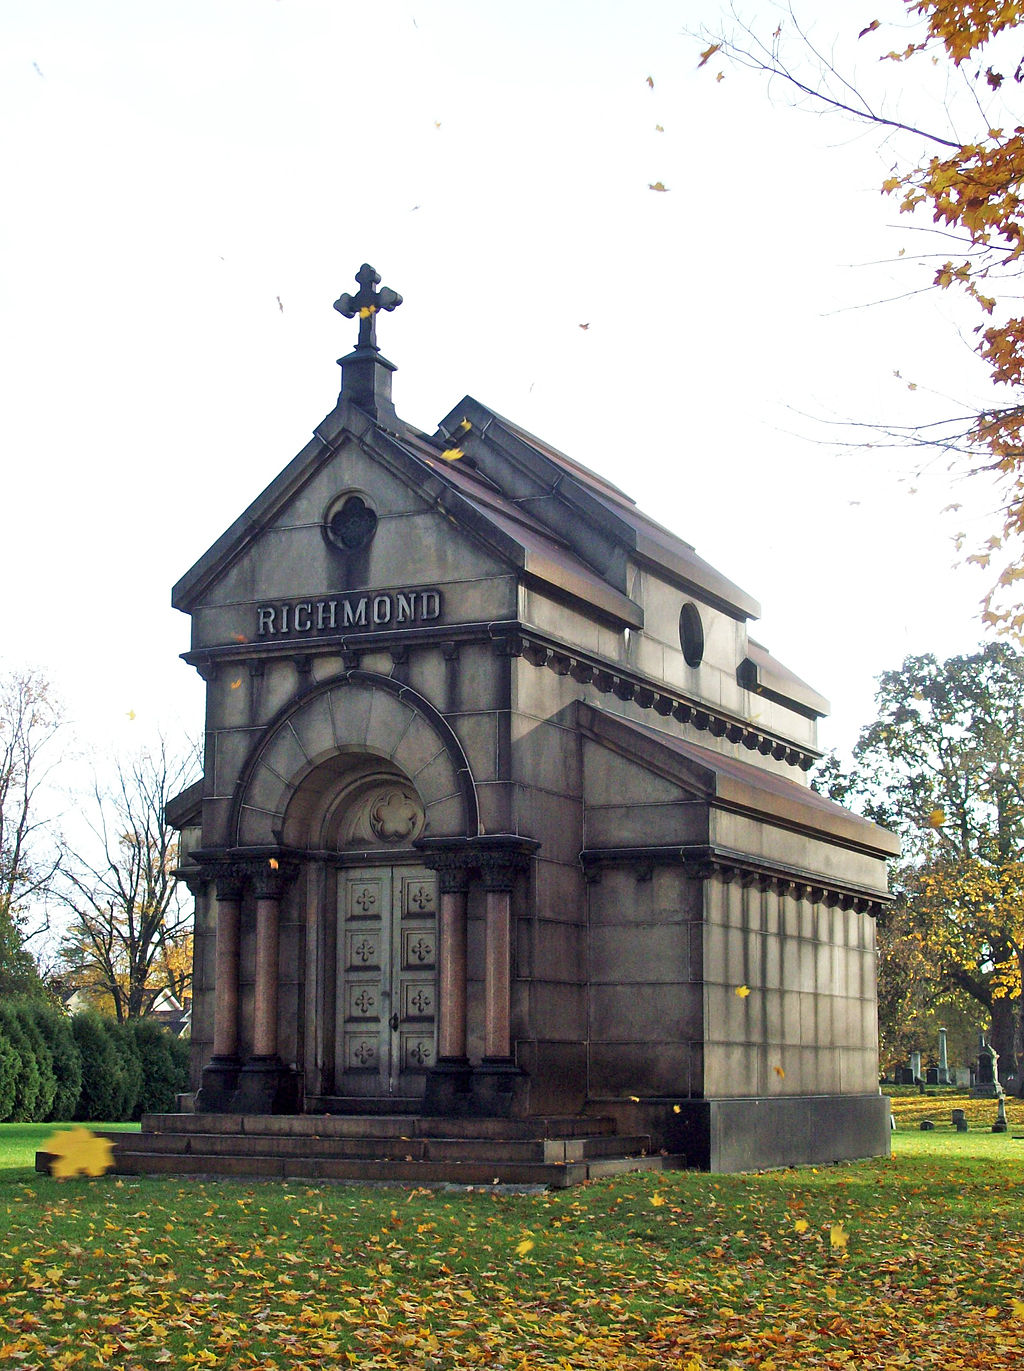 The Richmond Mausoleum is the largest structure in the cemetery.